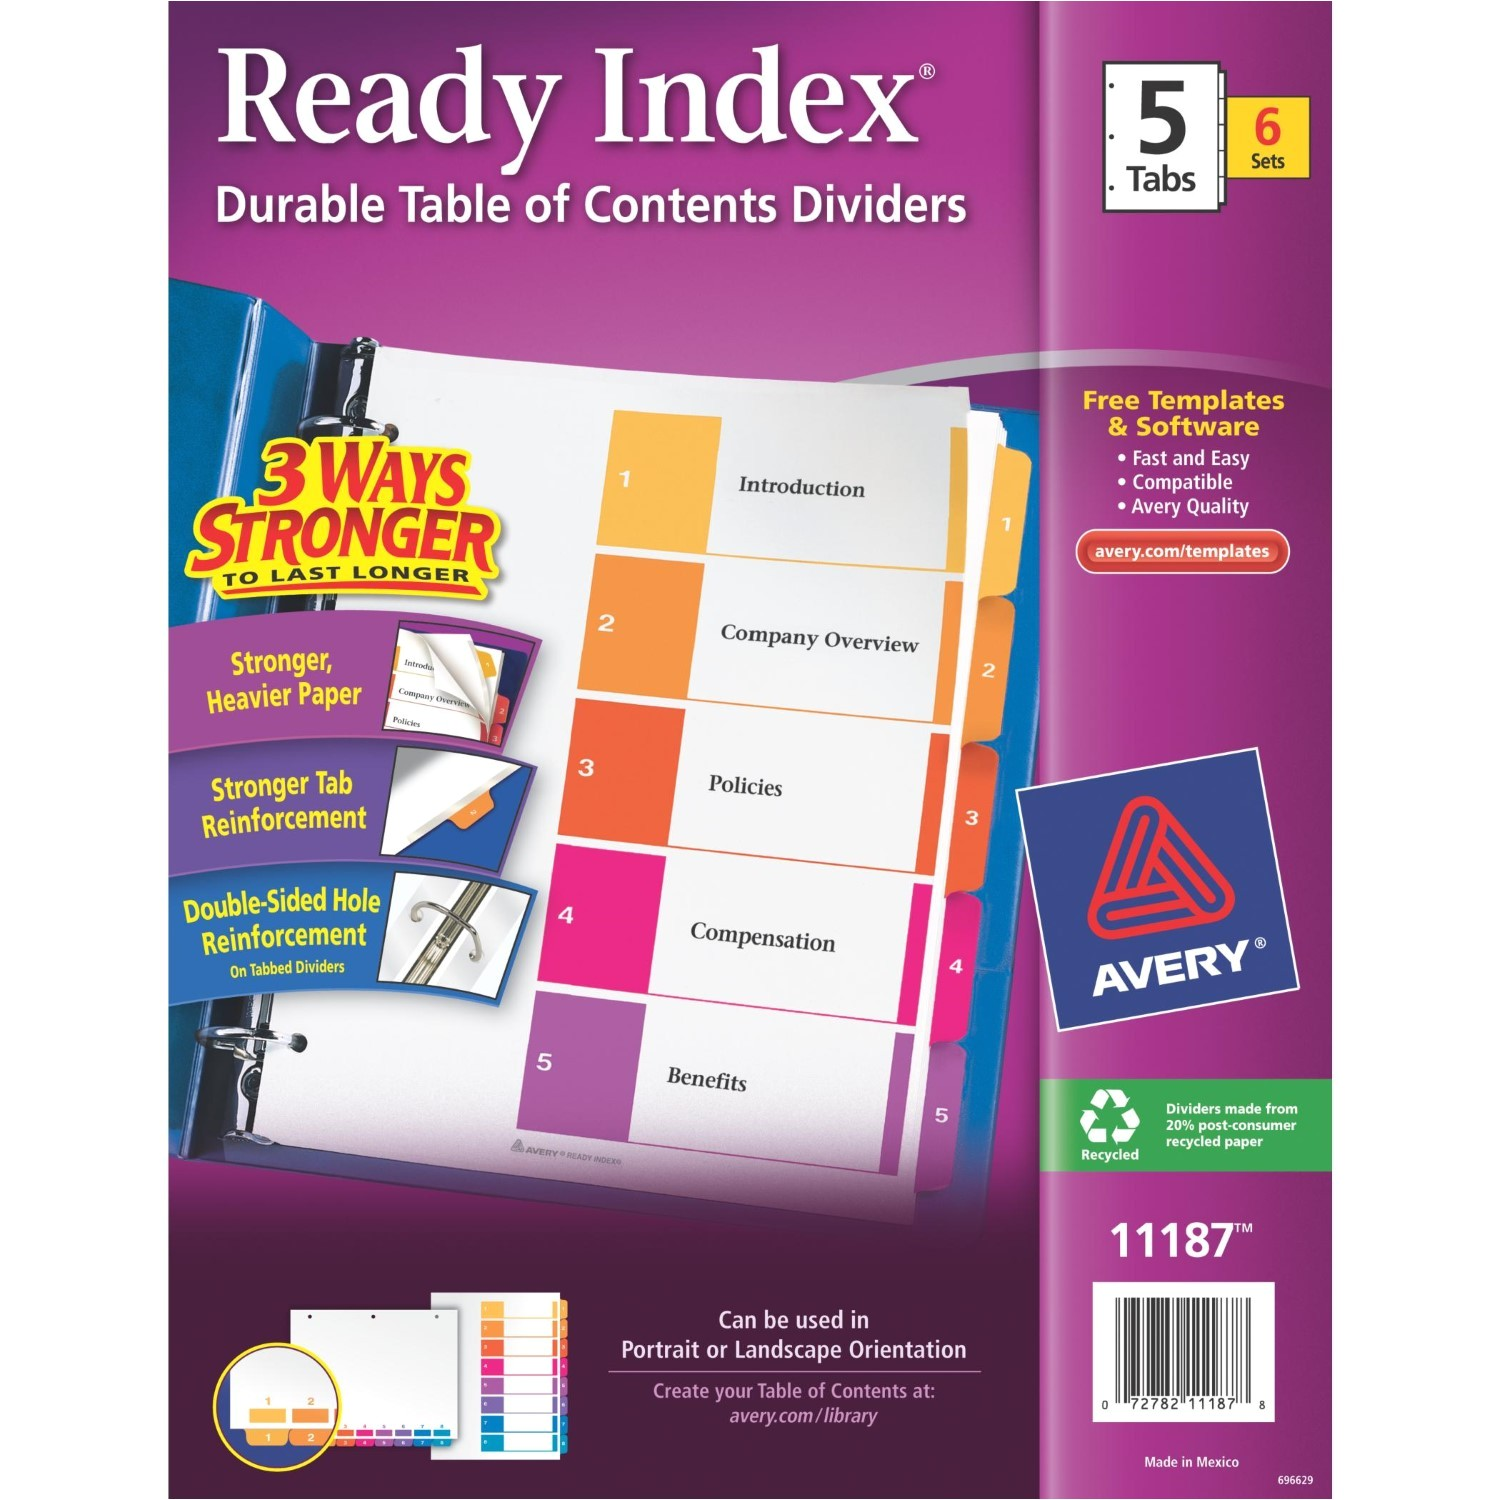 Avery 5 Tab Table Of Contents Template Avery Ready Index Table Of Contents Dividers assorted